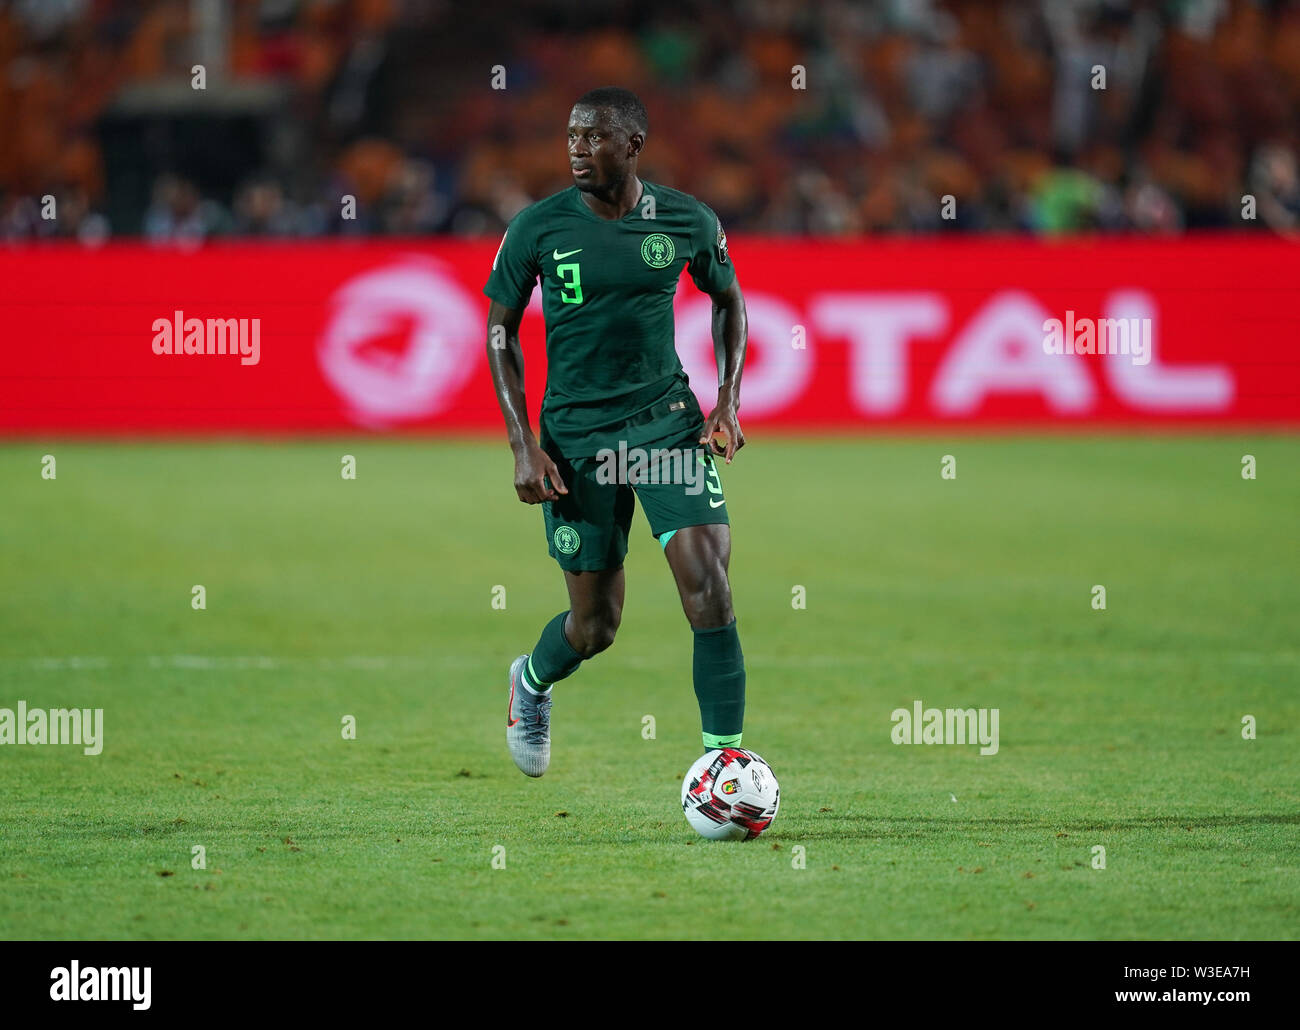 July 14, 2019 - Cairo, Algeria, Egypt - FRANCE OUT July 14, 2019: Jamilu Collins of Nigeria during the 2019 African Cup of Nations match between Algeria and Nigeria at the Cairo International Stadium in Cairo, Egypt. Ulrik Pedersen/CSM. - Stock Image